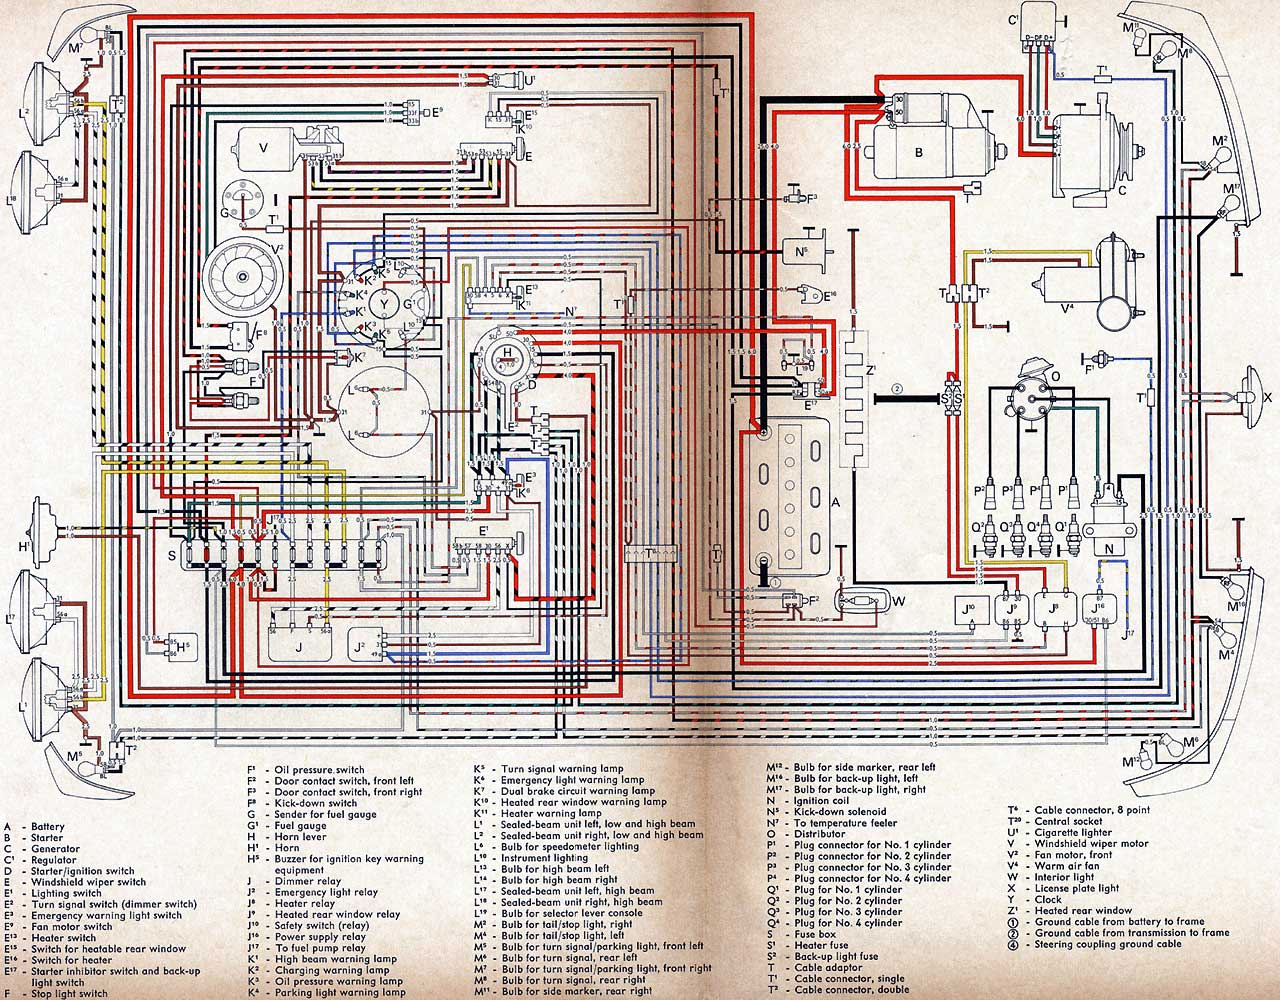 1970 vw type 2 wiring diagram simple thermostat diagrams  type4 org